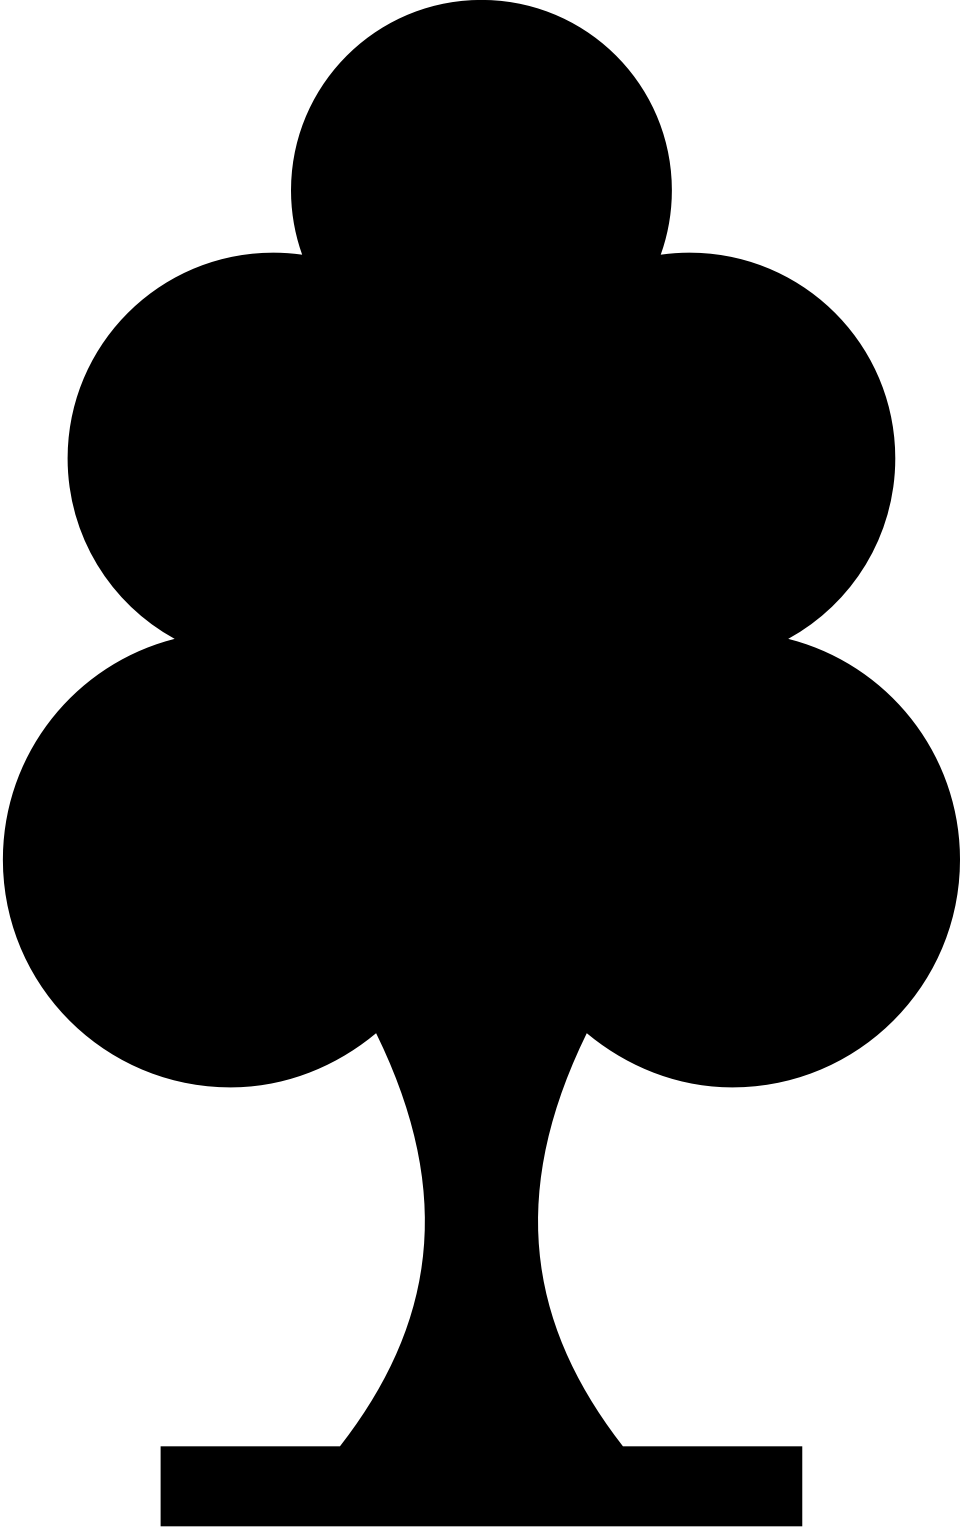 Pictogram of a tree